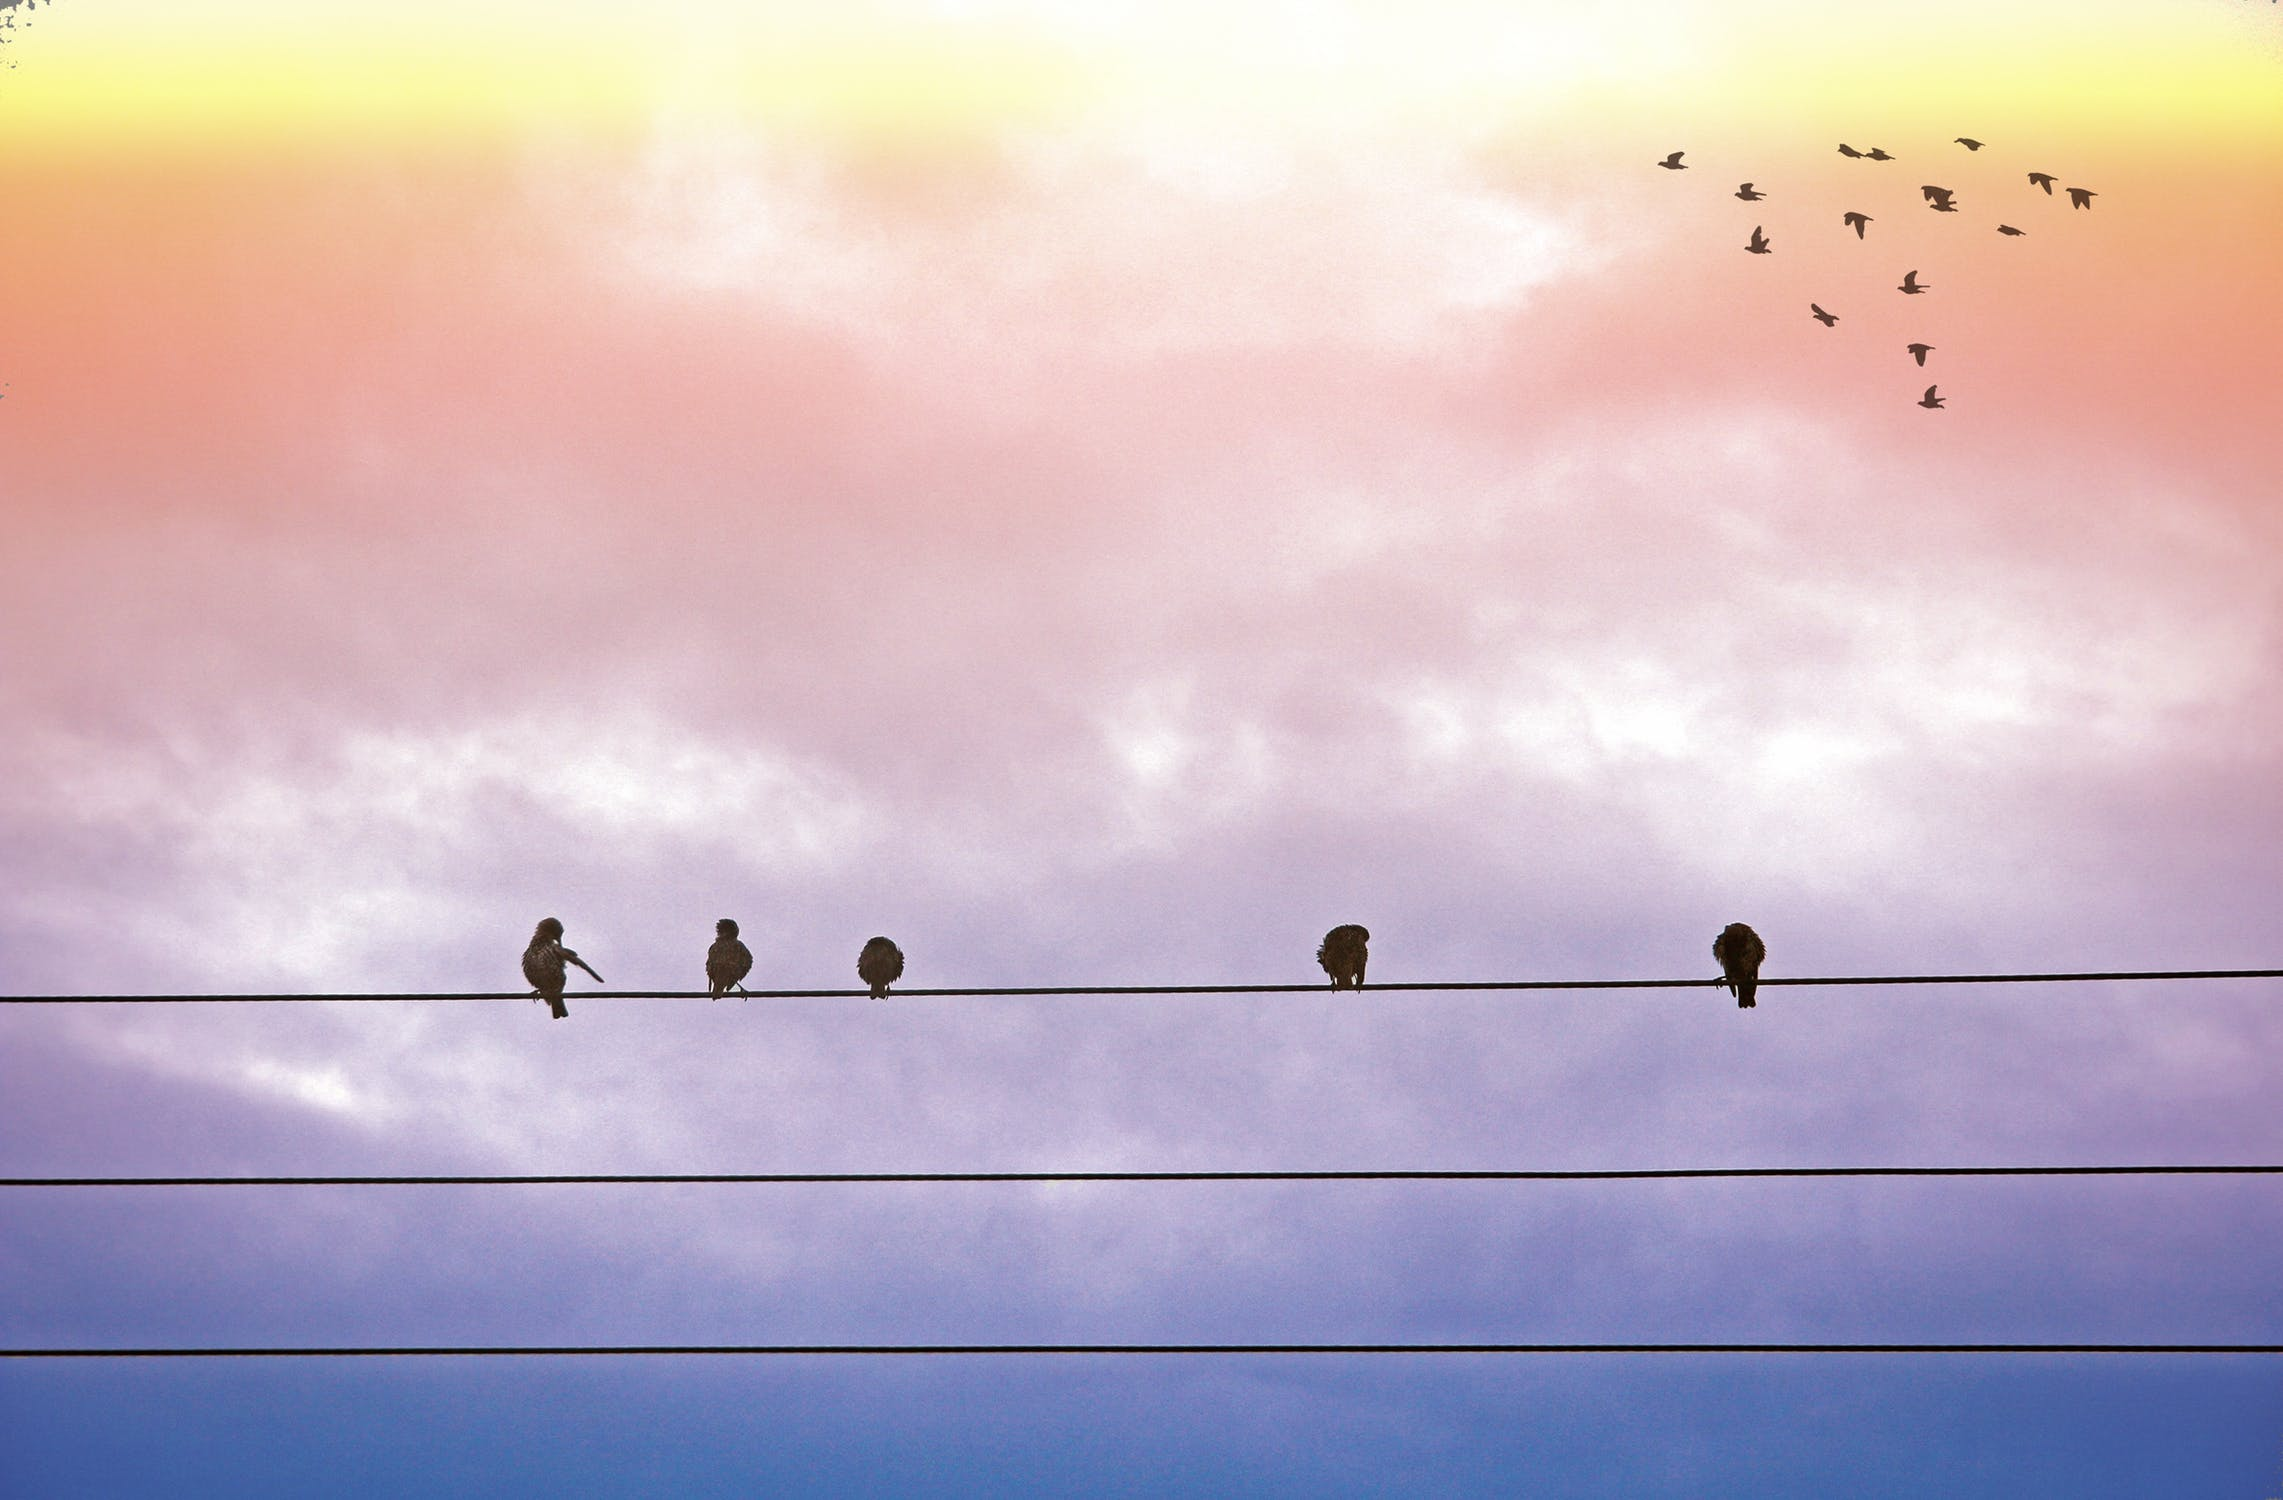 message from the birds